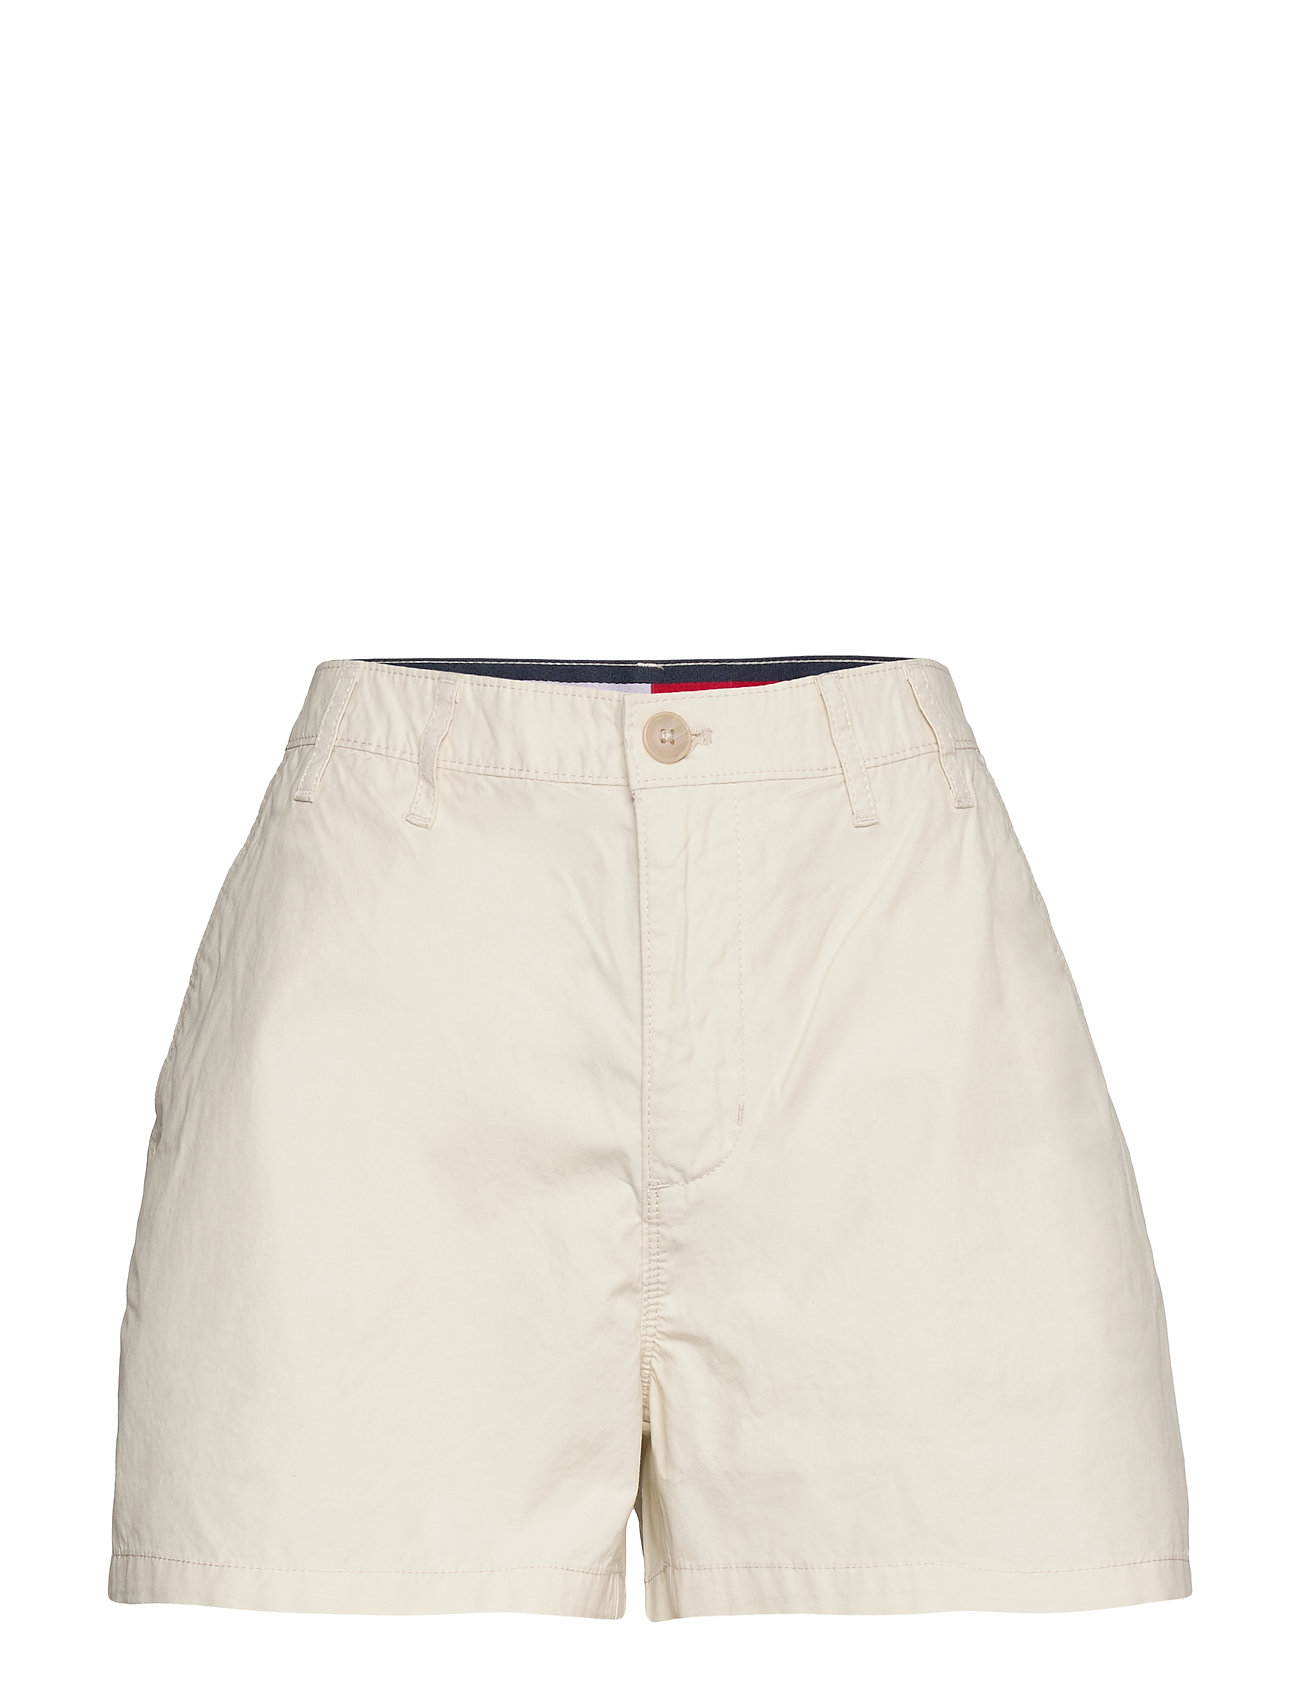 Image of Tjw Essential Chino Short Shorts Chino Shorts Creme Tommy Jeans (3406276773)